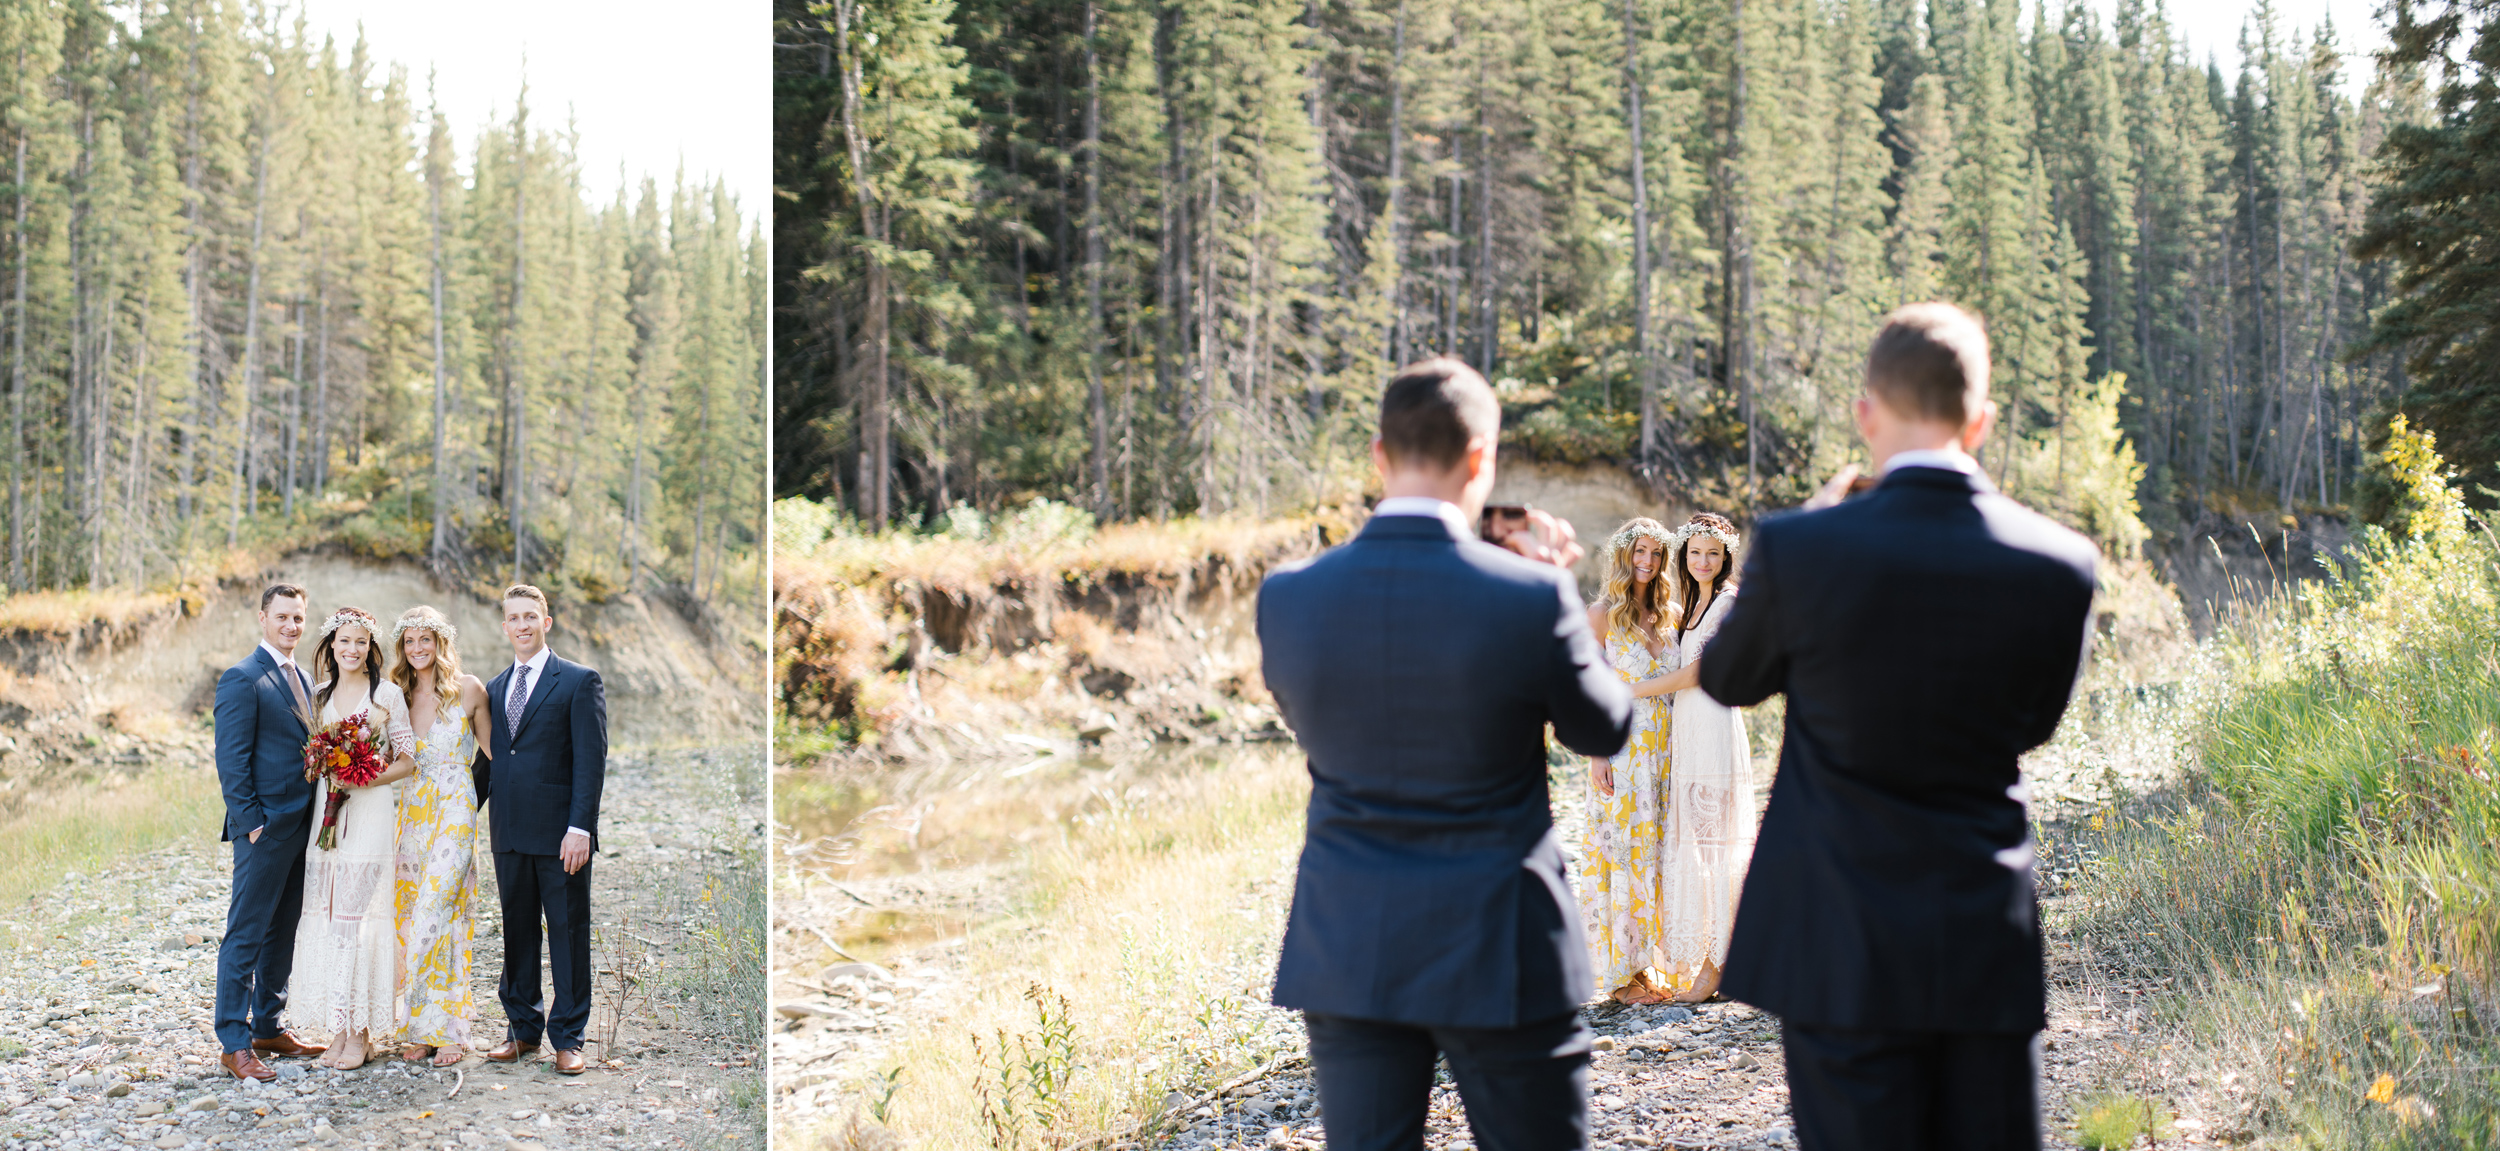 Calgary_Intimate_Backyard_Wedding0022.jpg